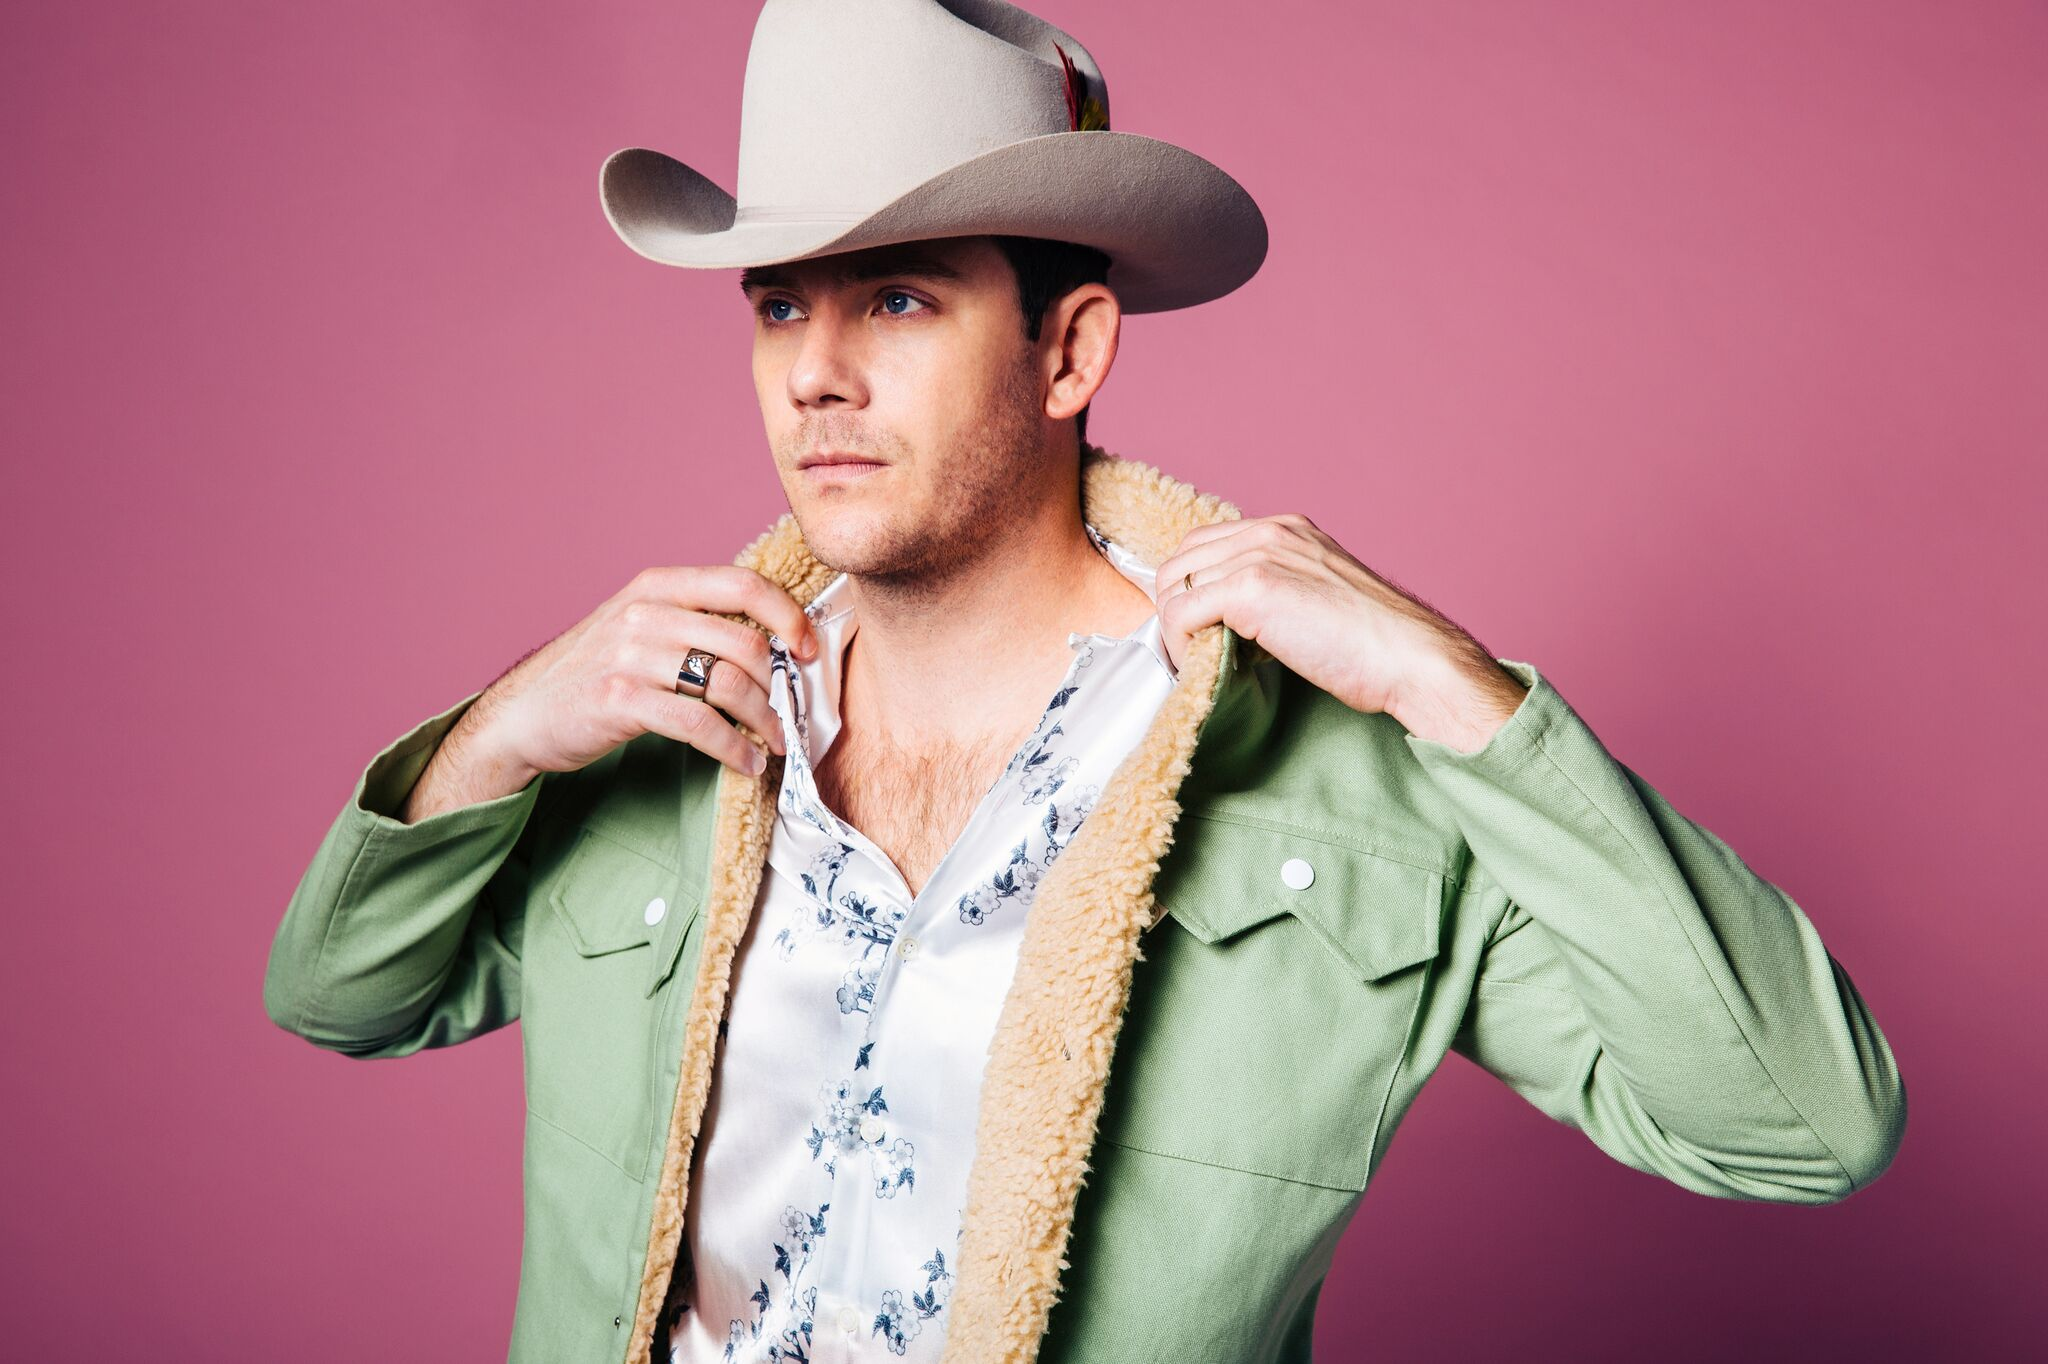 Sam Outlaw and Jim Lauderdale will be performing at Paradiso next week